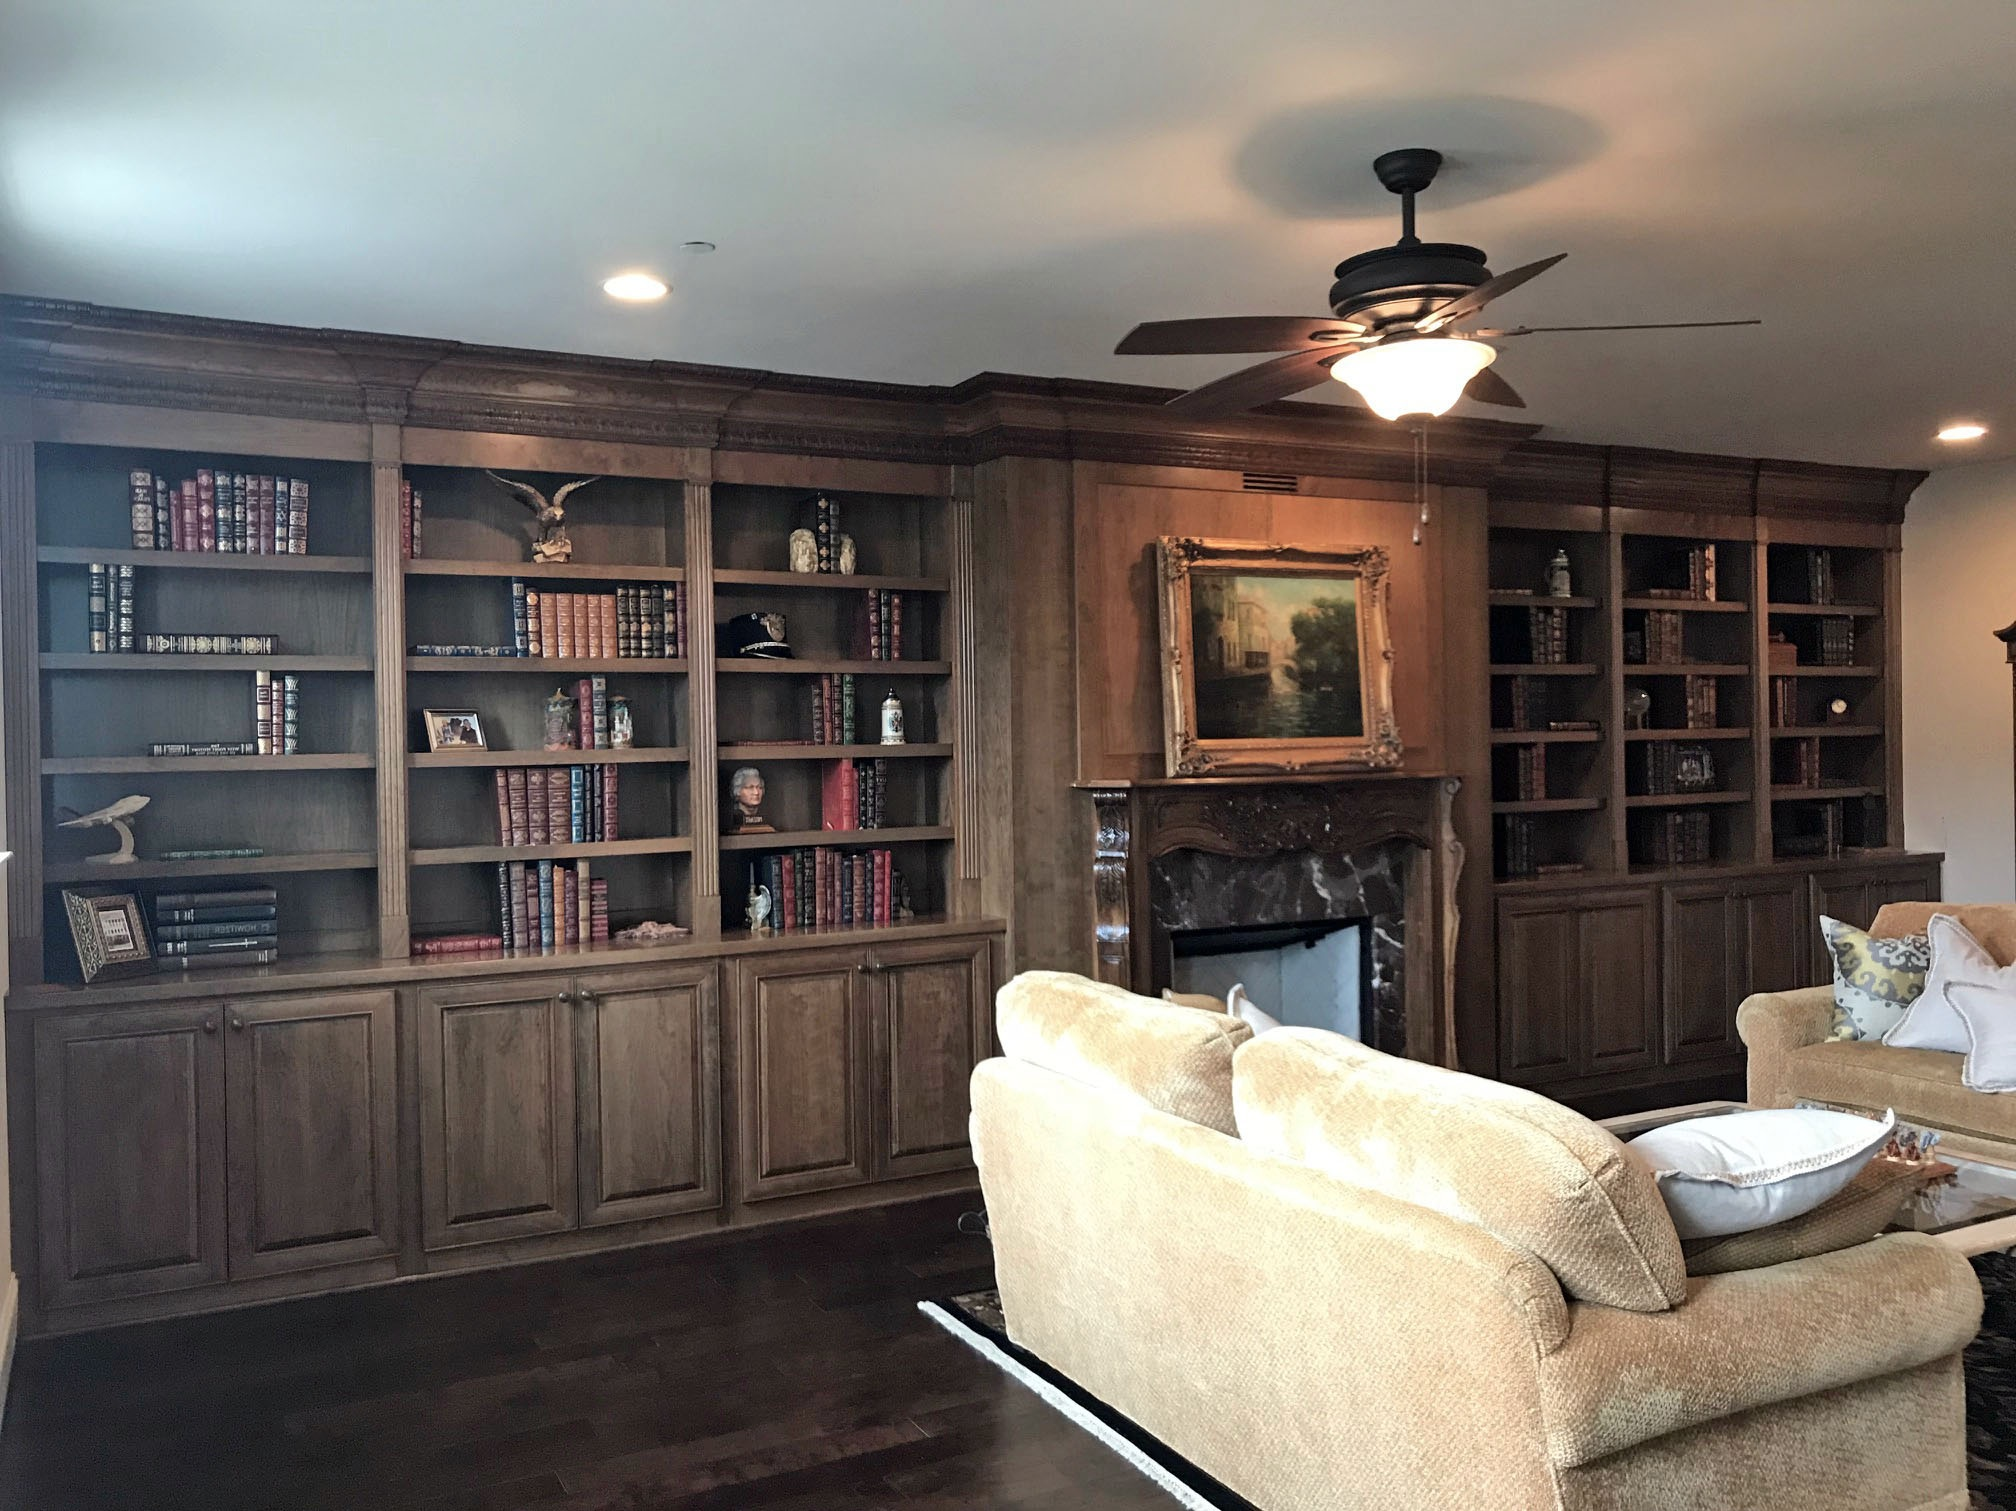 Fireplace Built-Ins with Adjustable Shelves, Raised Panel Doors, Fluting & Column Detail, and Custom Crown